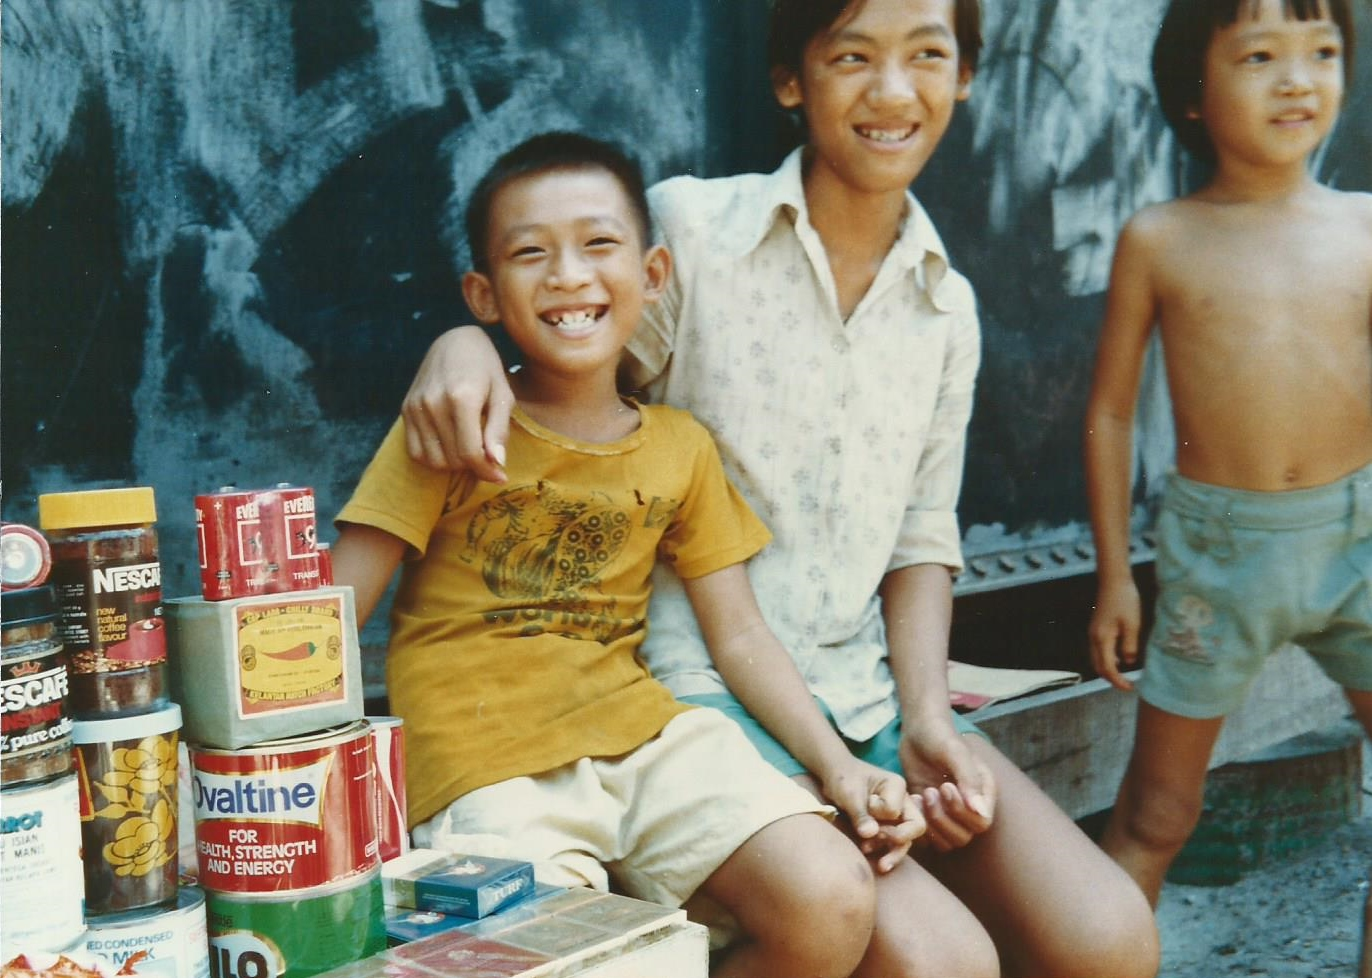 Pulau Bidong Refugees Camp, 1979